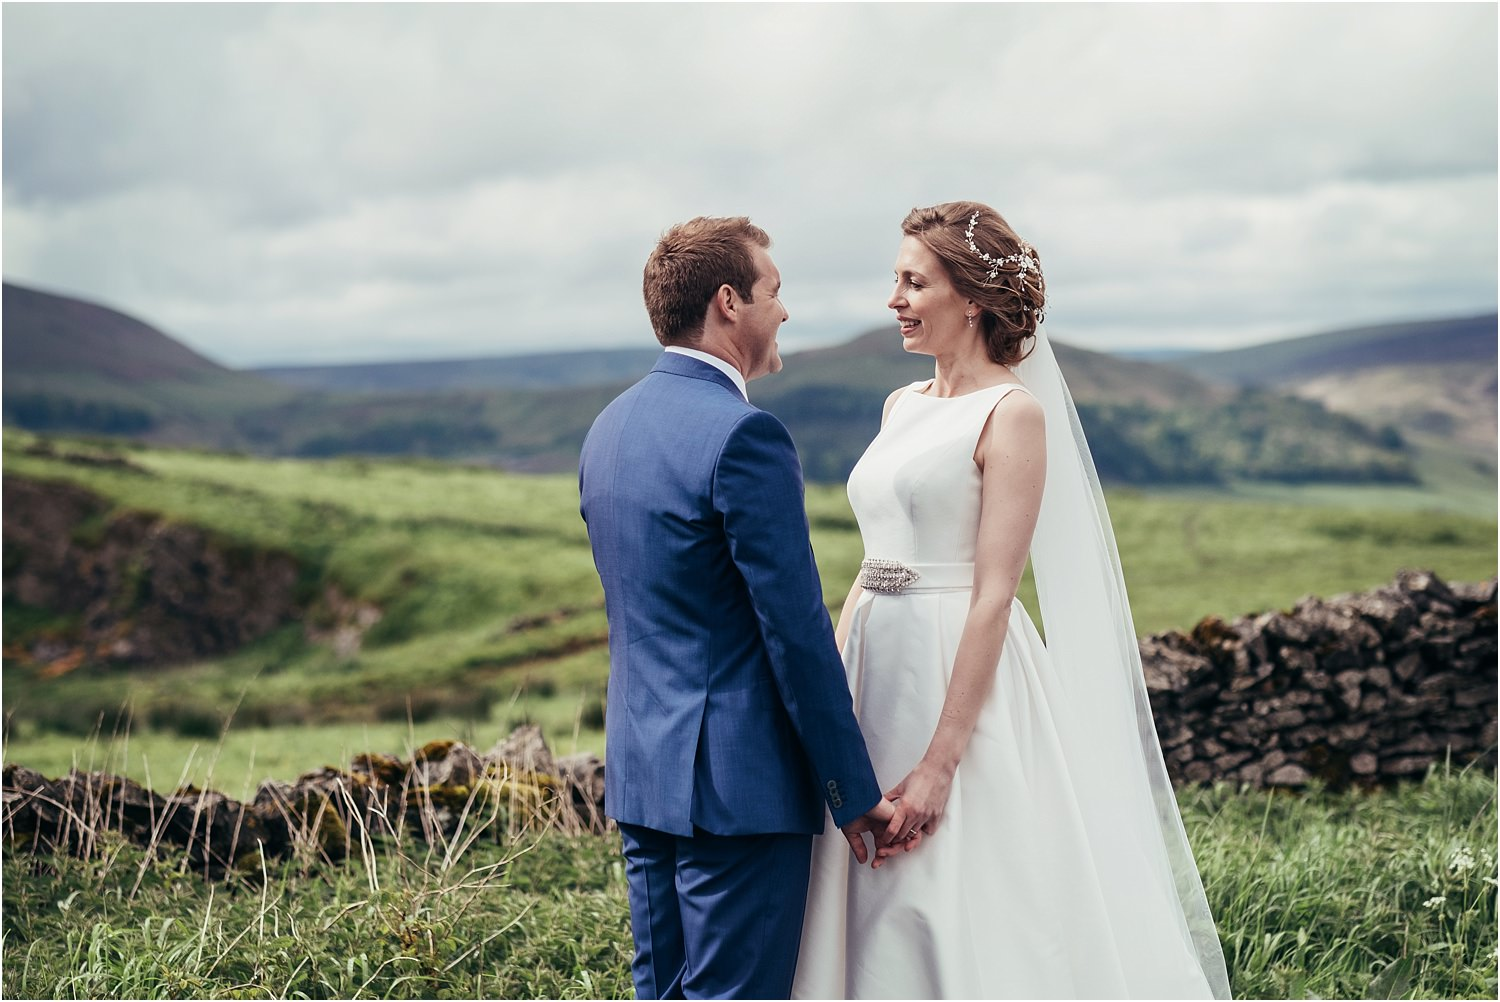 Bride and groom with Trough of Bowland in the background at their rural Lancashire wedding